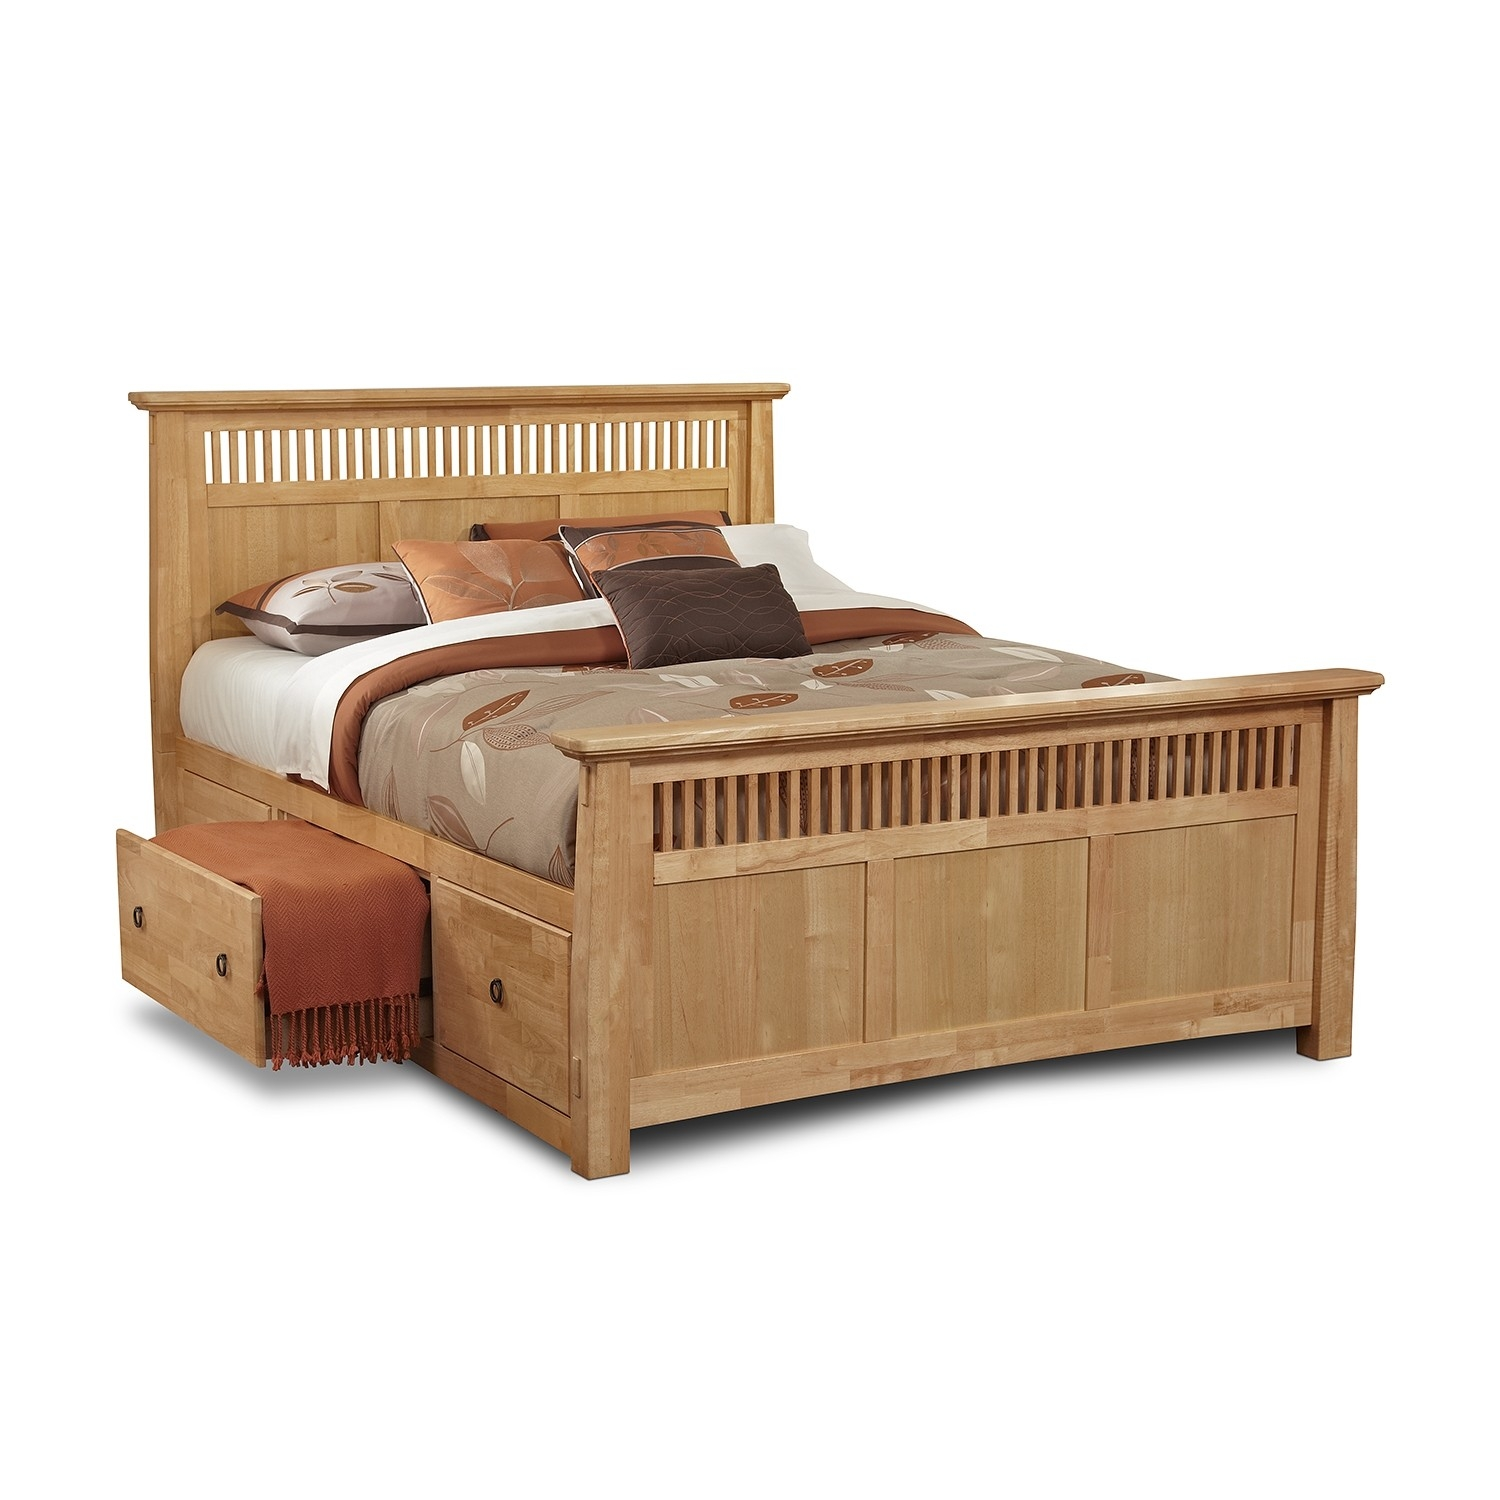 Full Bed Frame With Storage Drawers